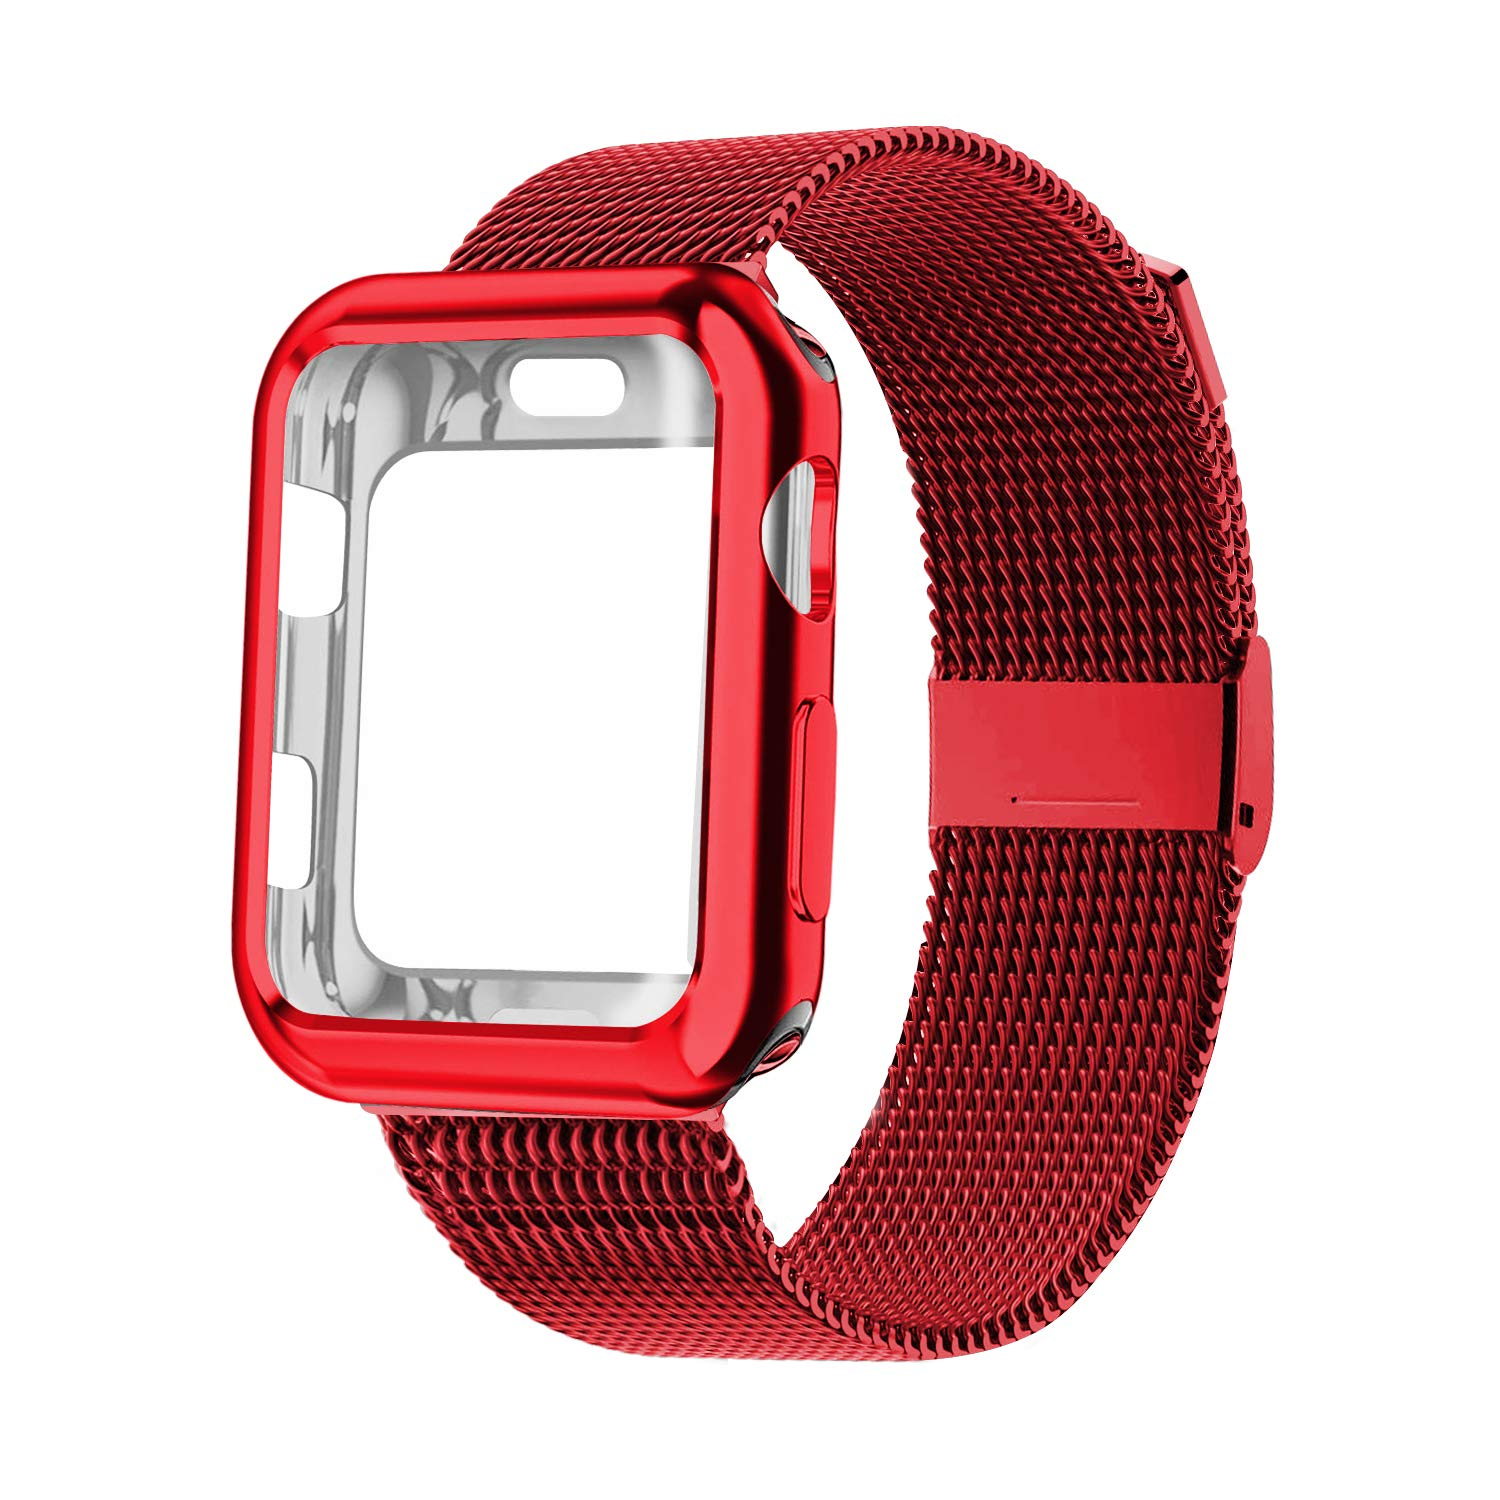 YC YANCH Compatible with Apple Watch Band 42mm with Case, Stainless Steel Mesh Loop Band with Apple Watch Screen Protector Compatible with iWatch Apple Watch Series 1/2/3/4 (42mm Red) by YC YANCH